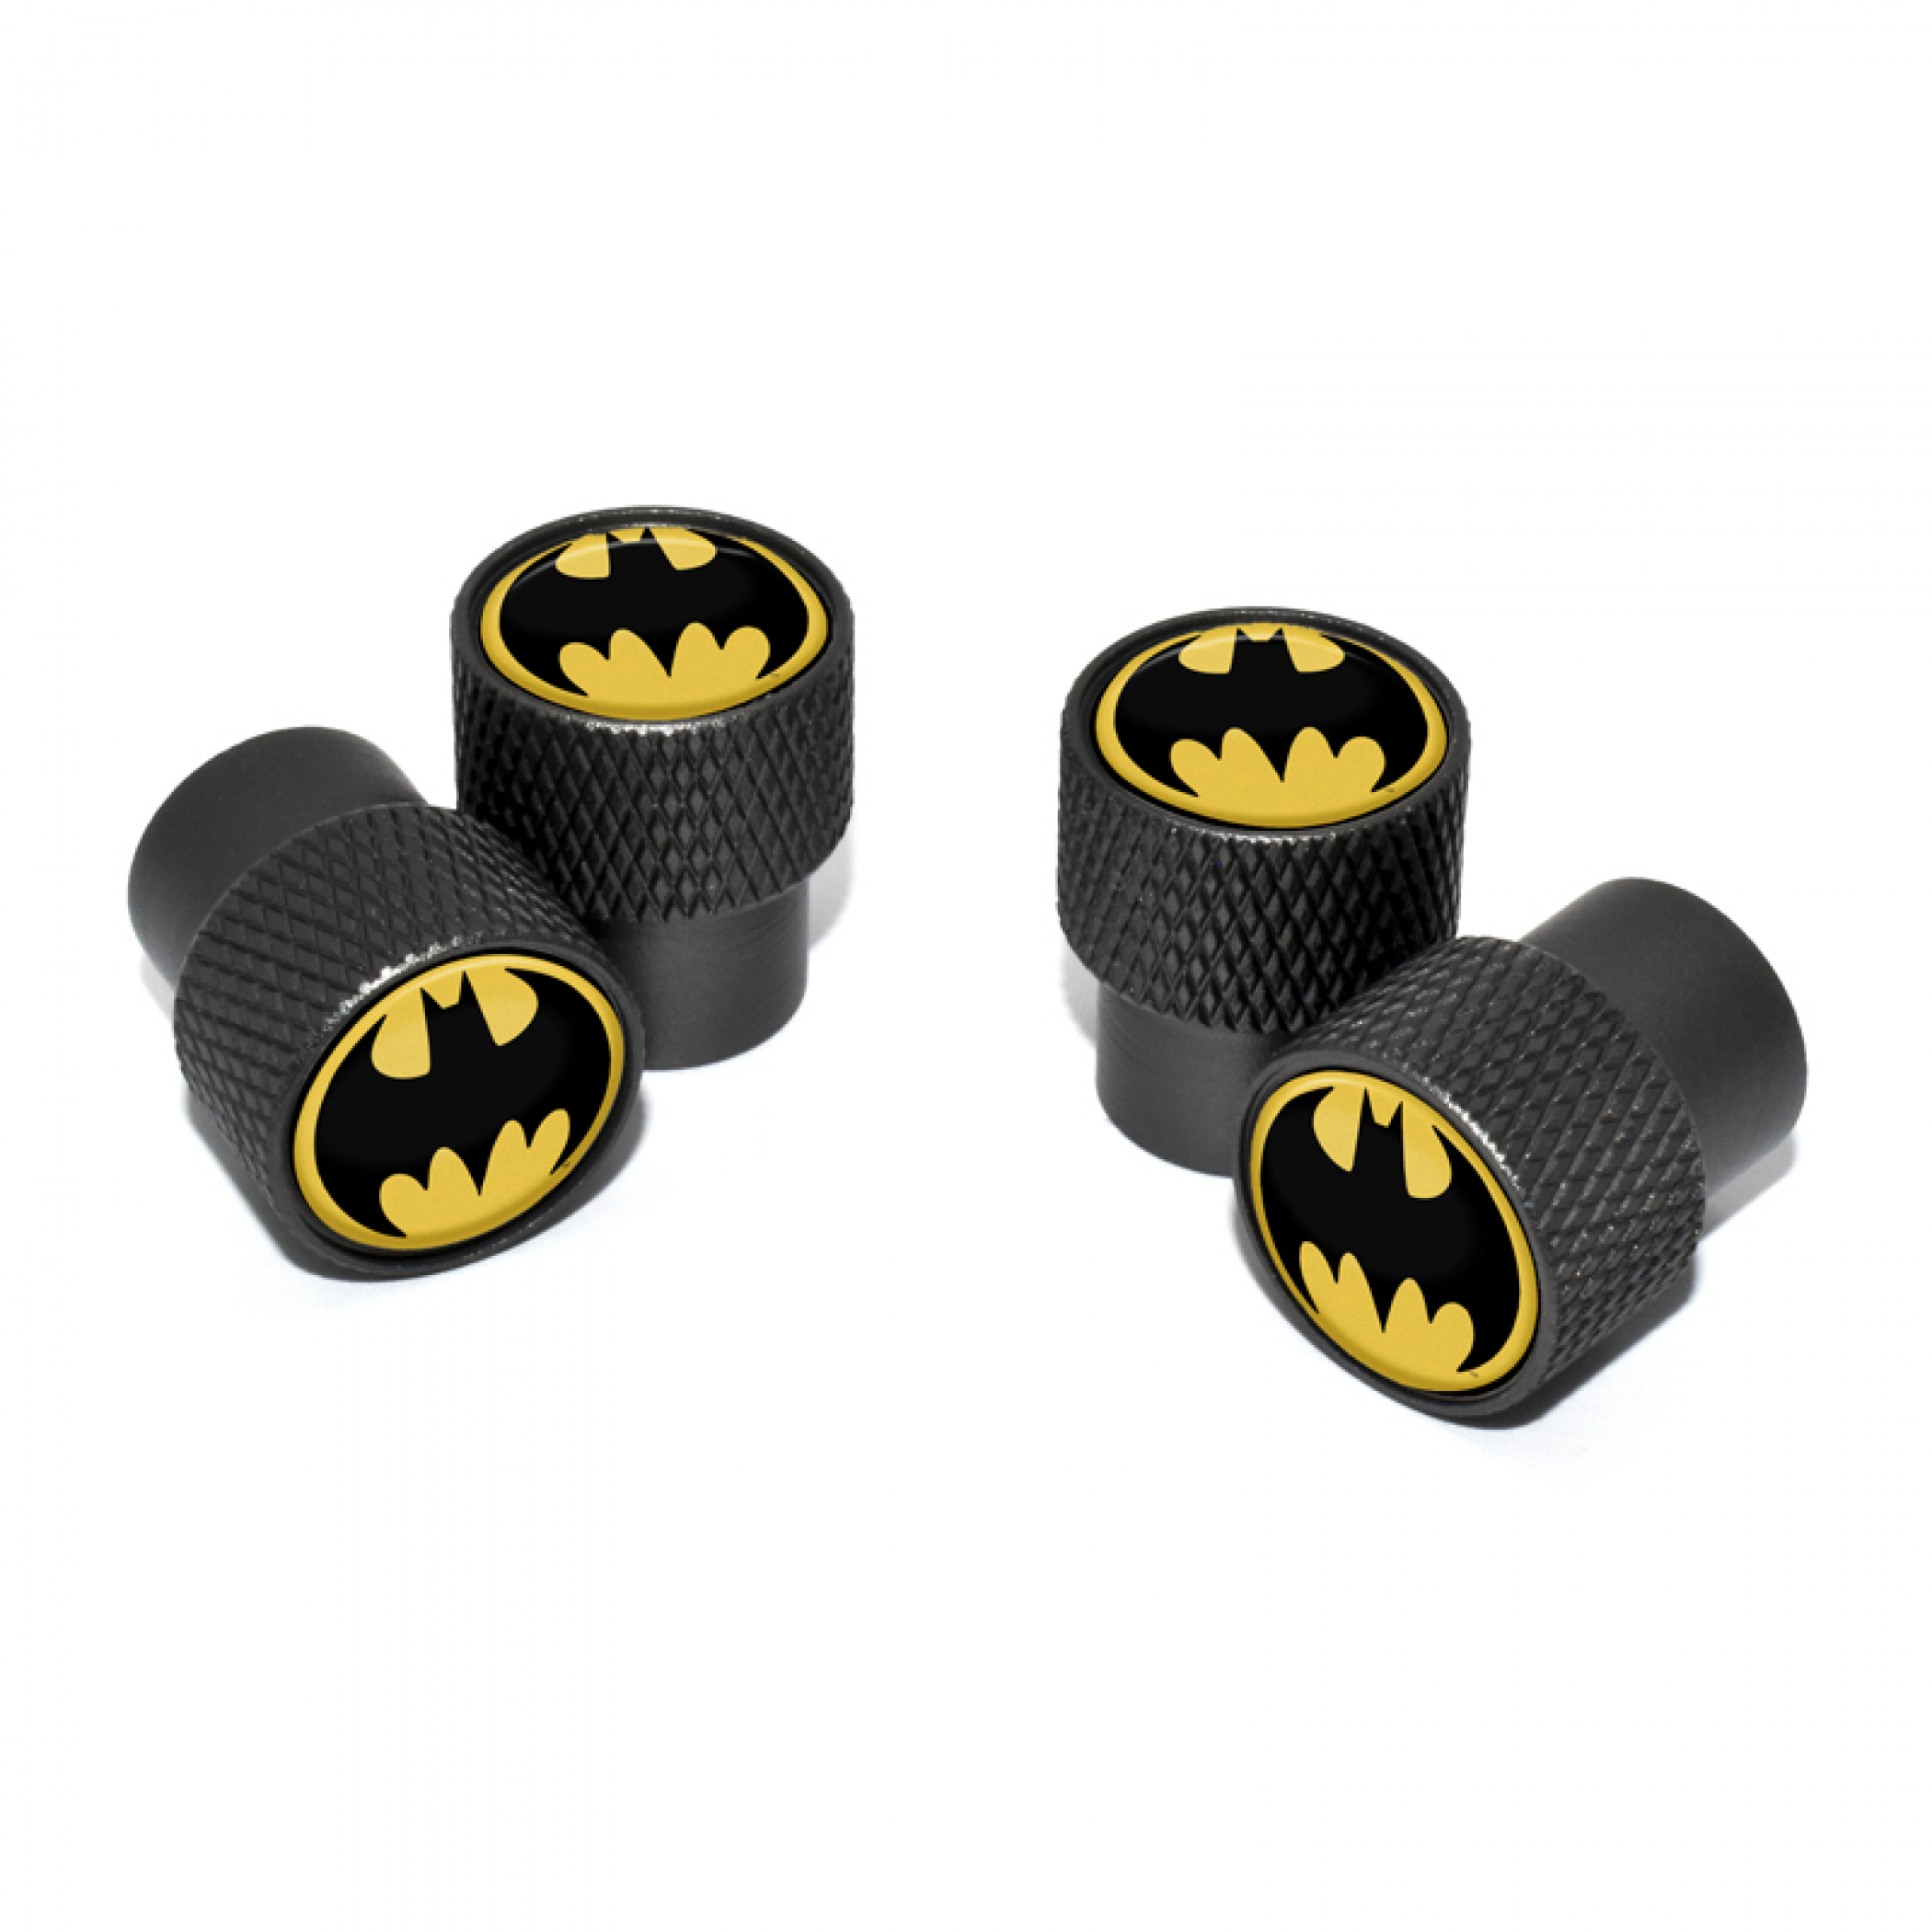 Batman Symbol Valve Stem Caps with Black Knurling 4-Pack